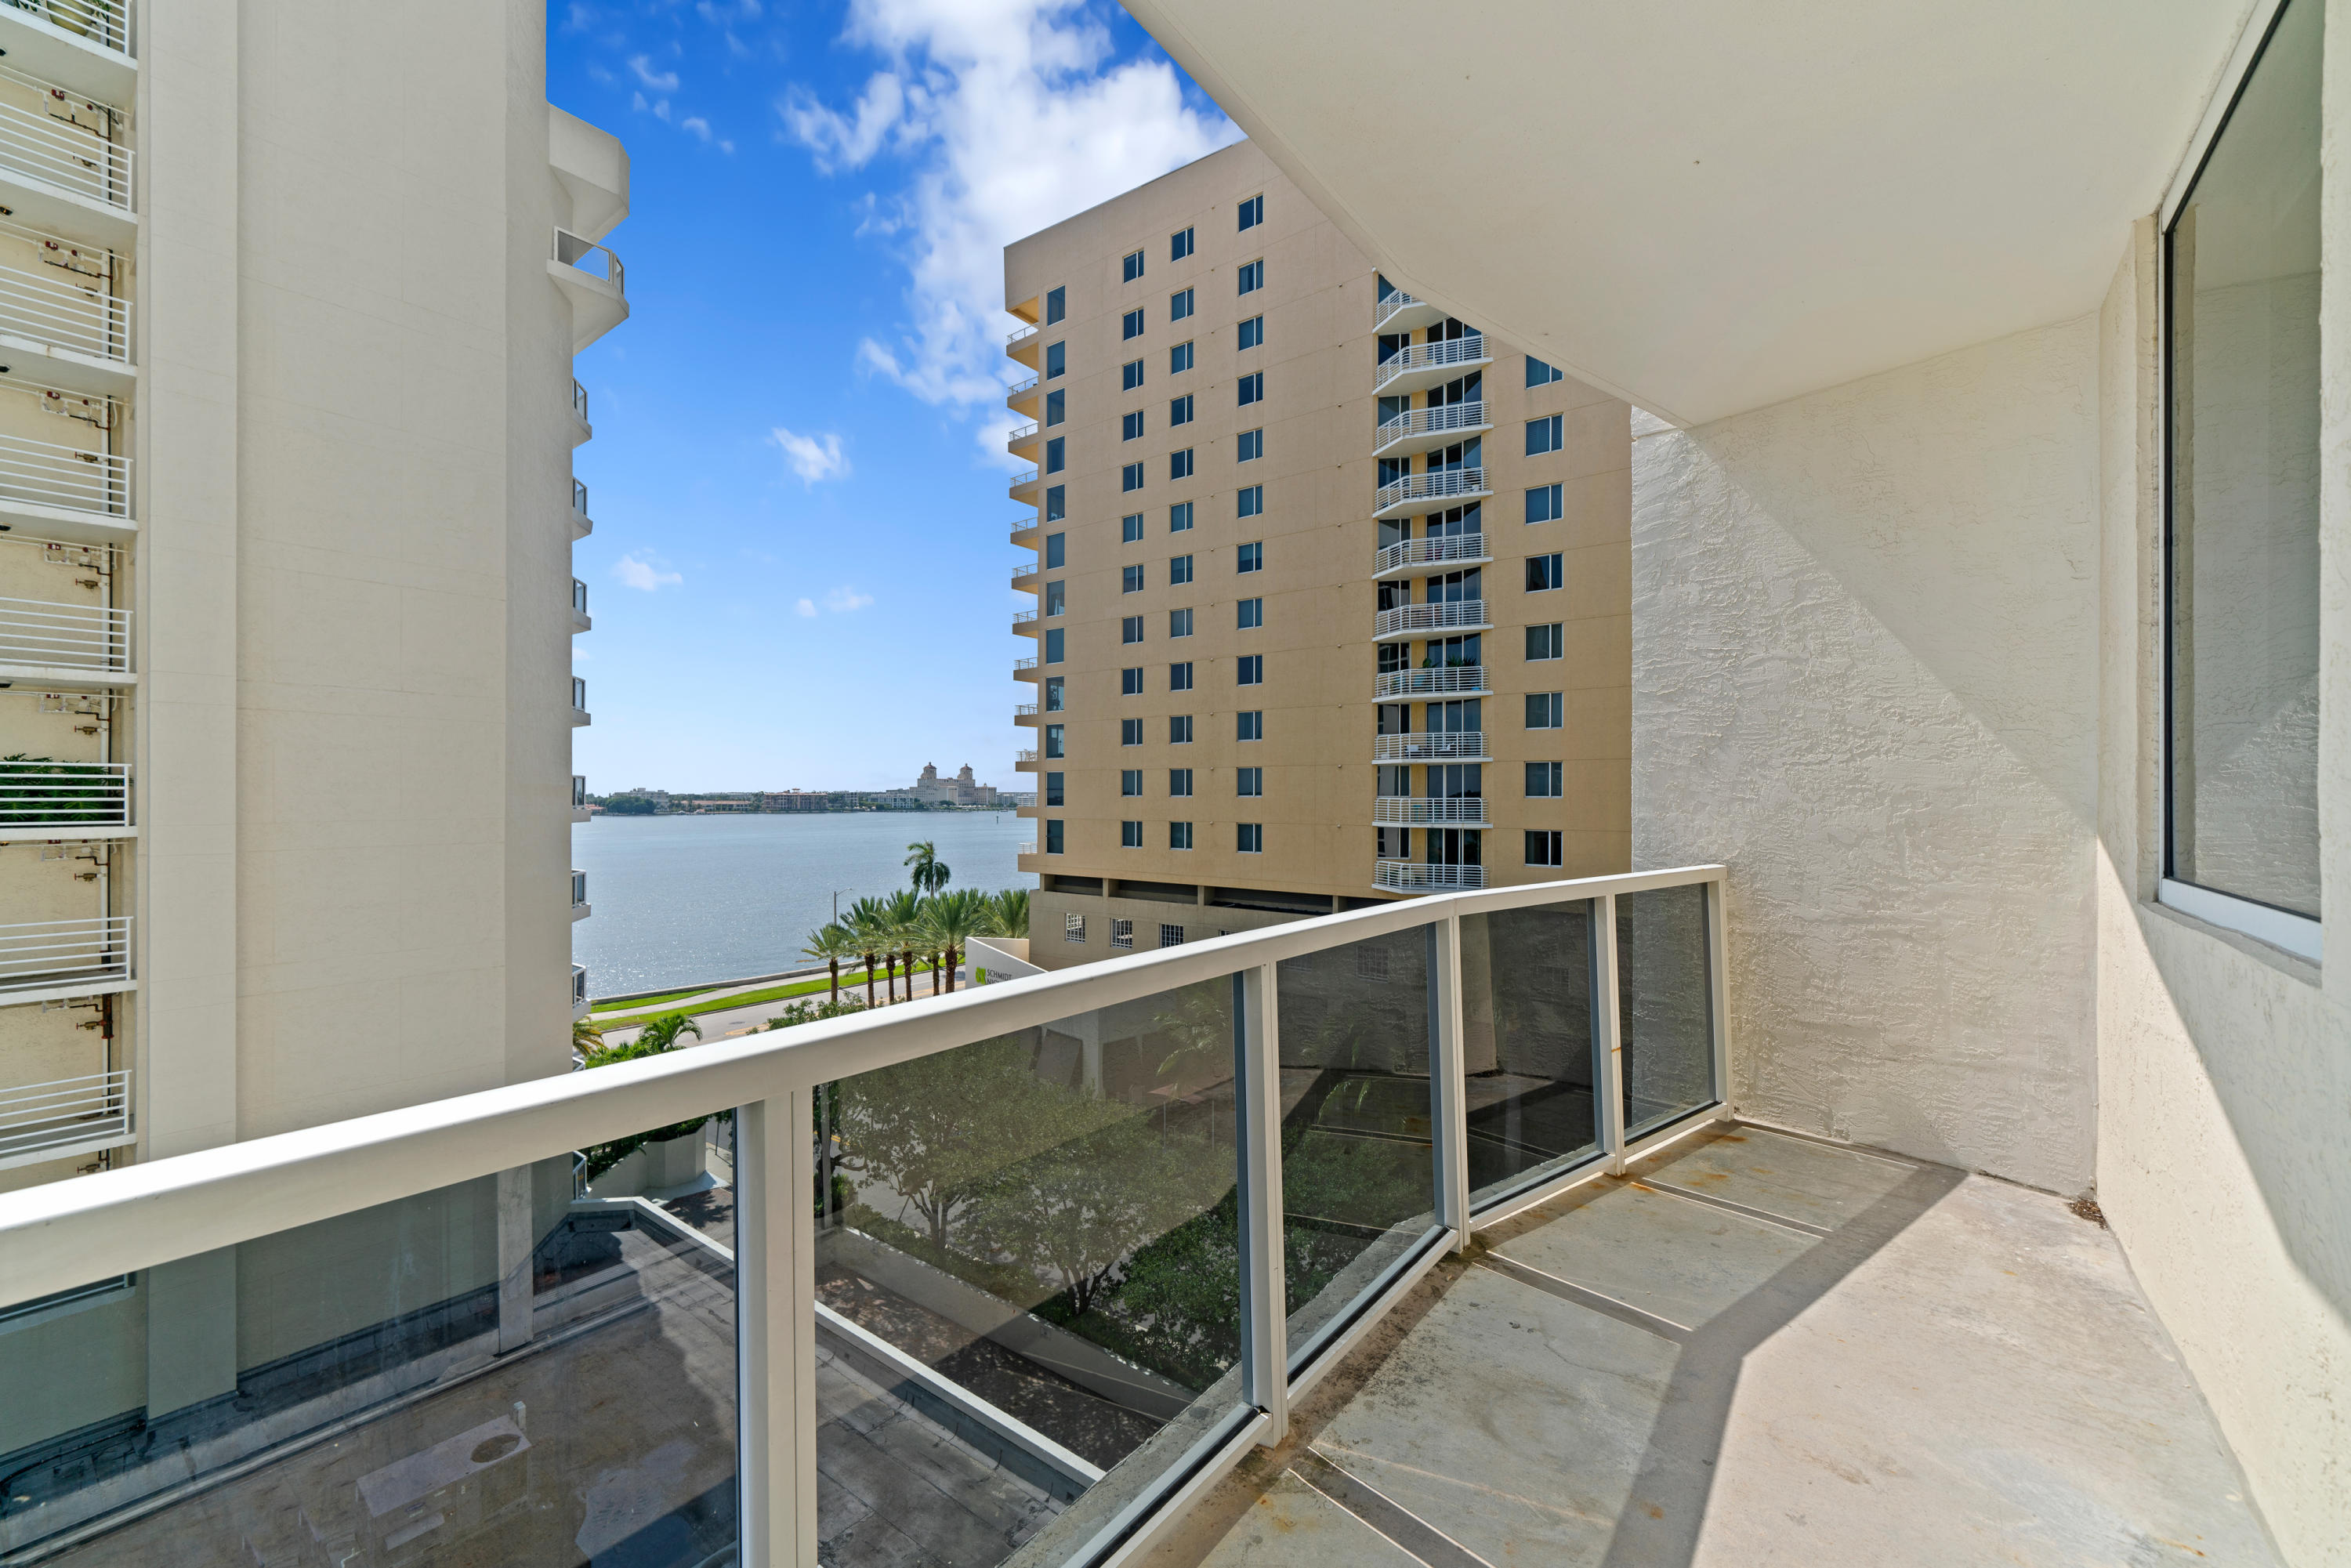 VILLA LOFTS WEST PALM BEACH FLORIDA